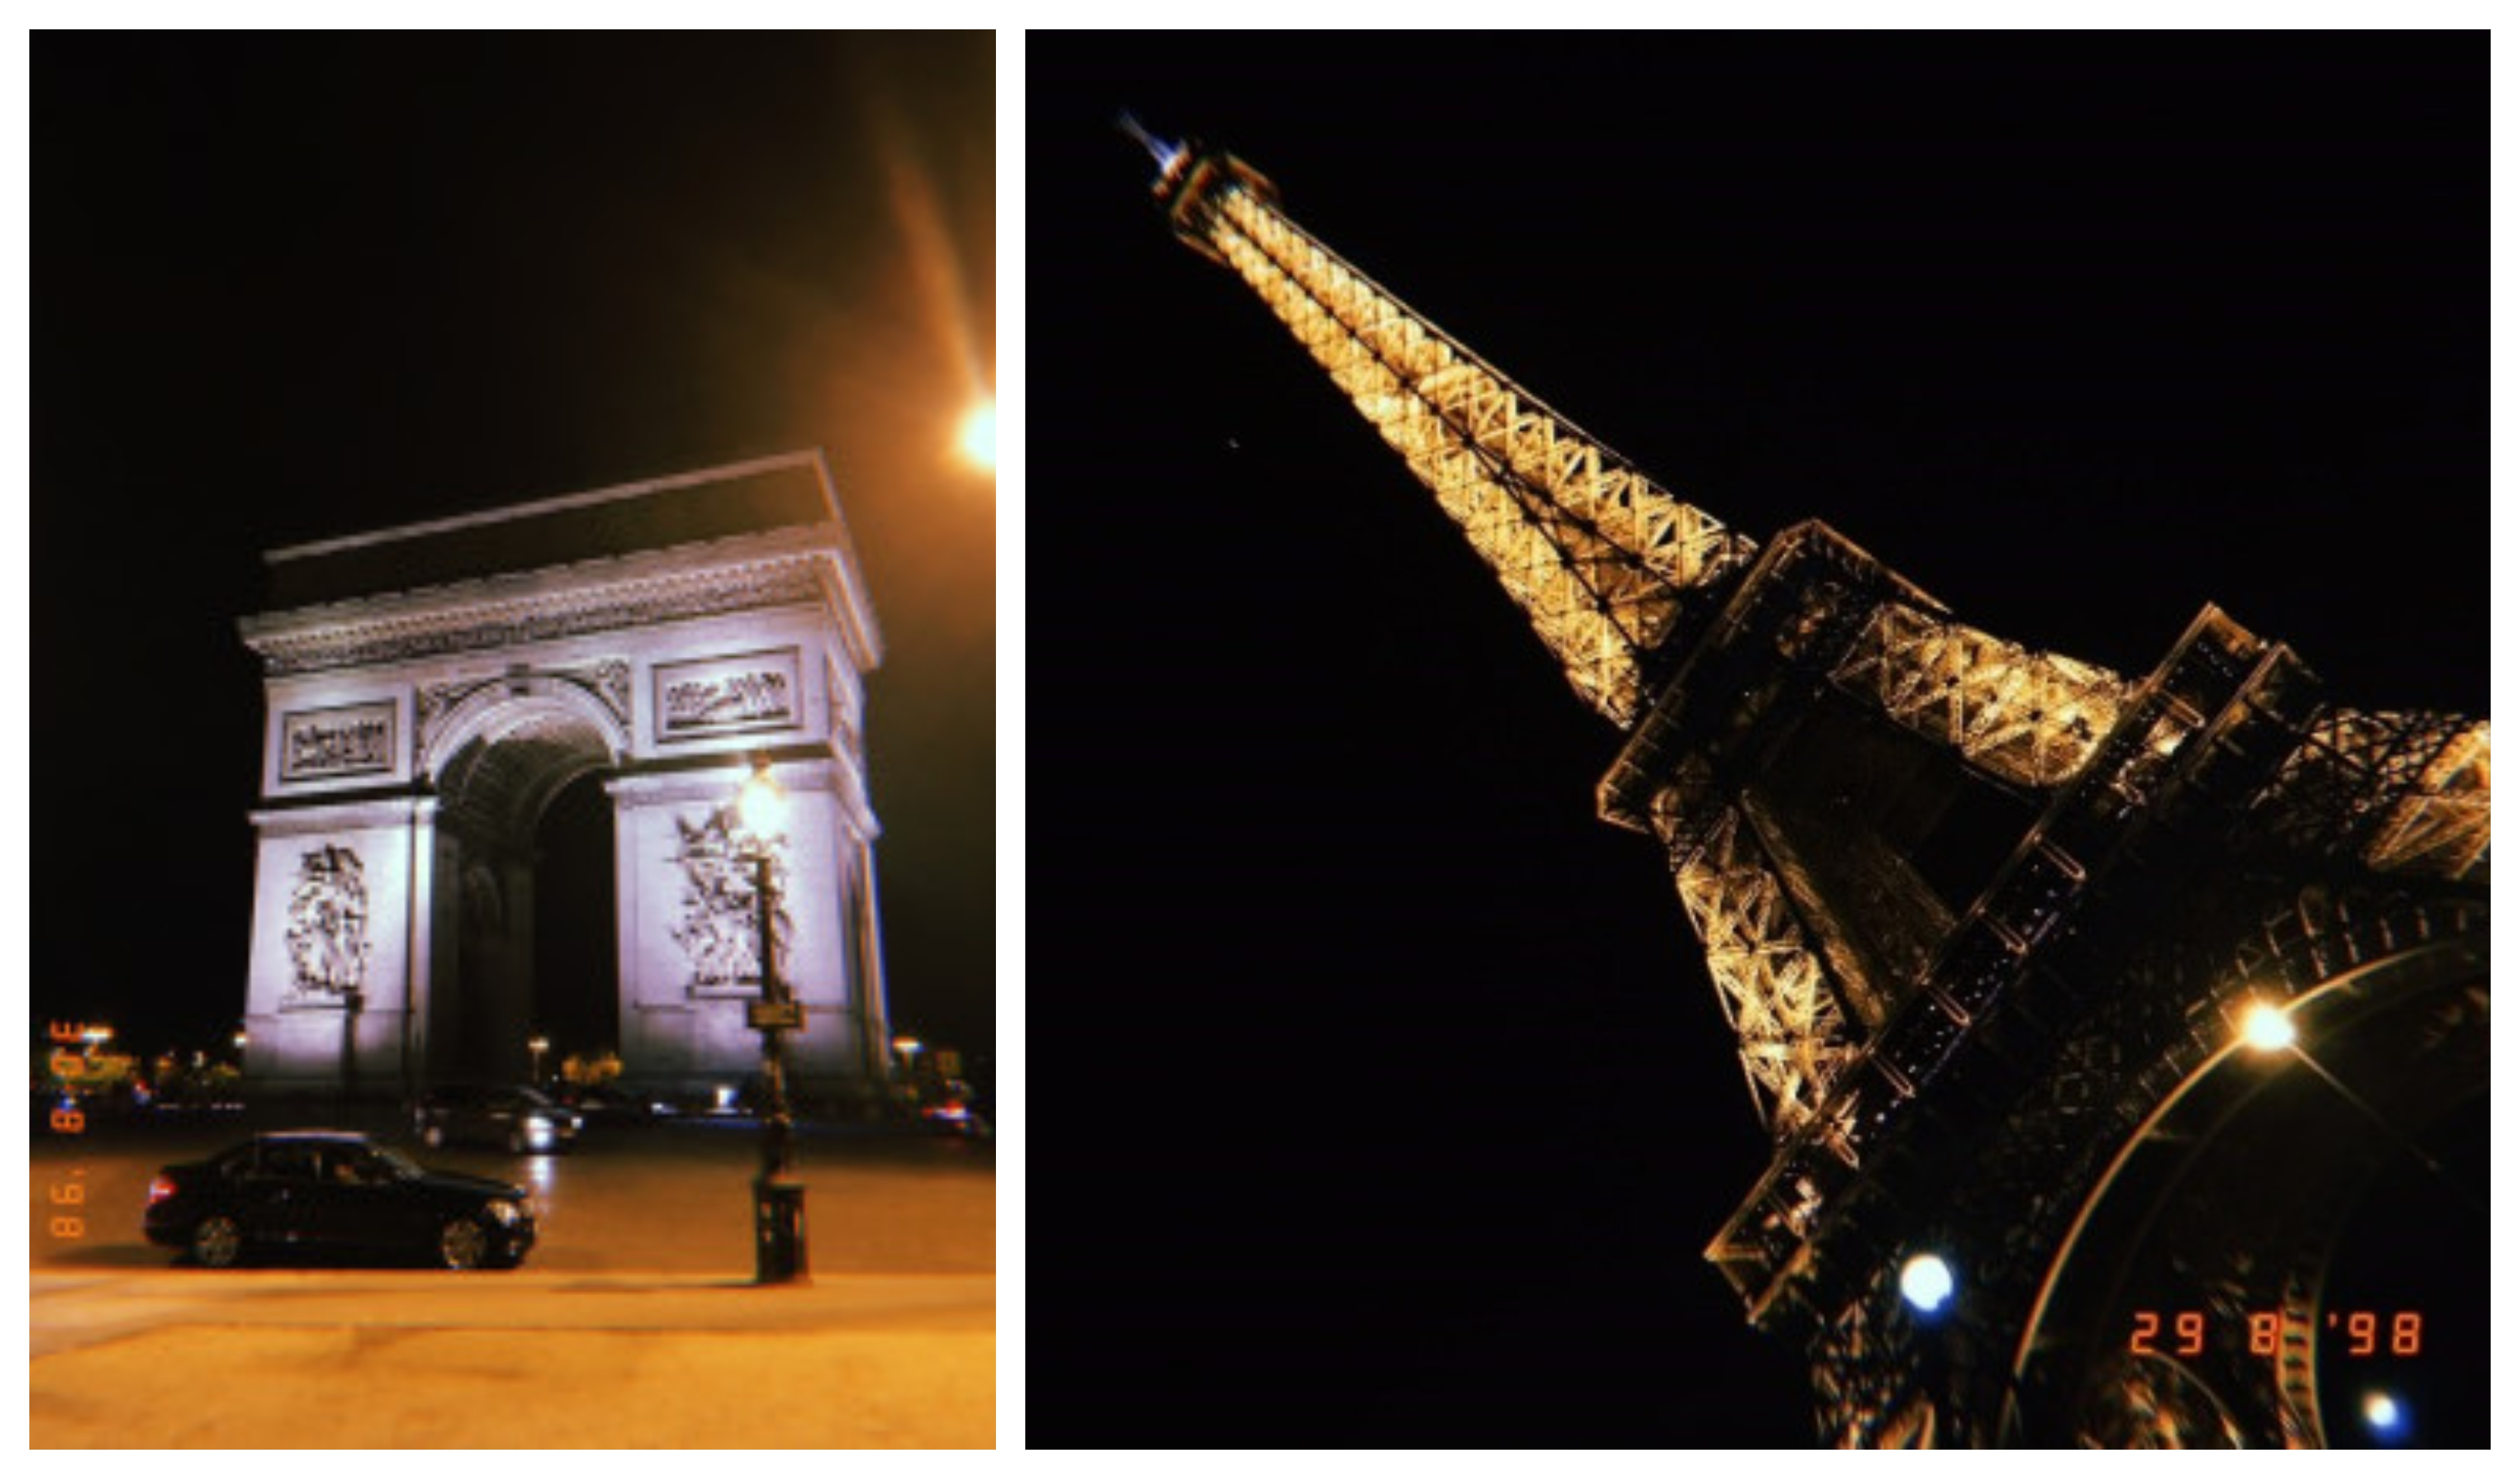 Photo collage of the Arc de Triomphe and the Eiffel Tower